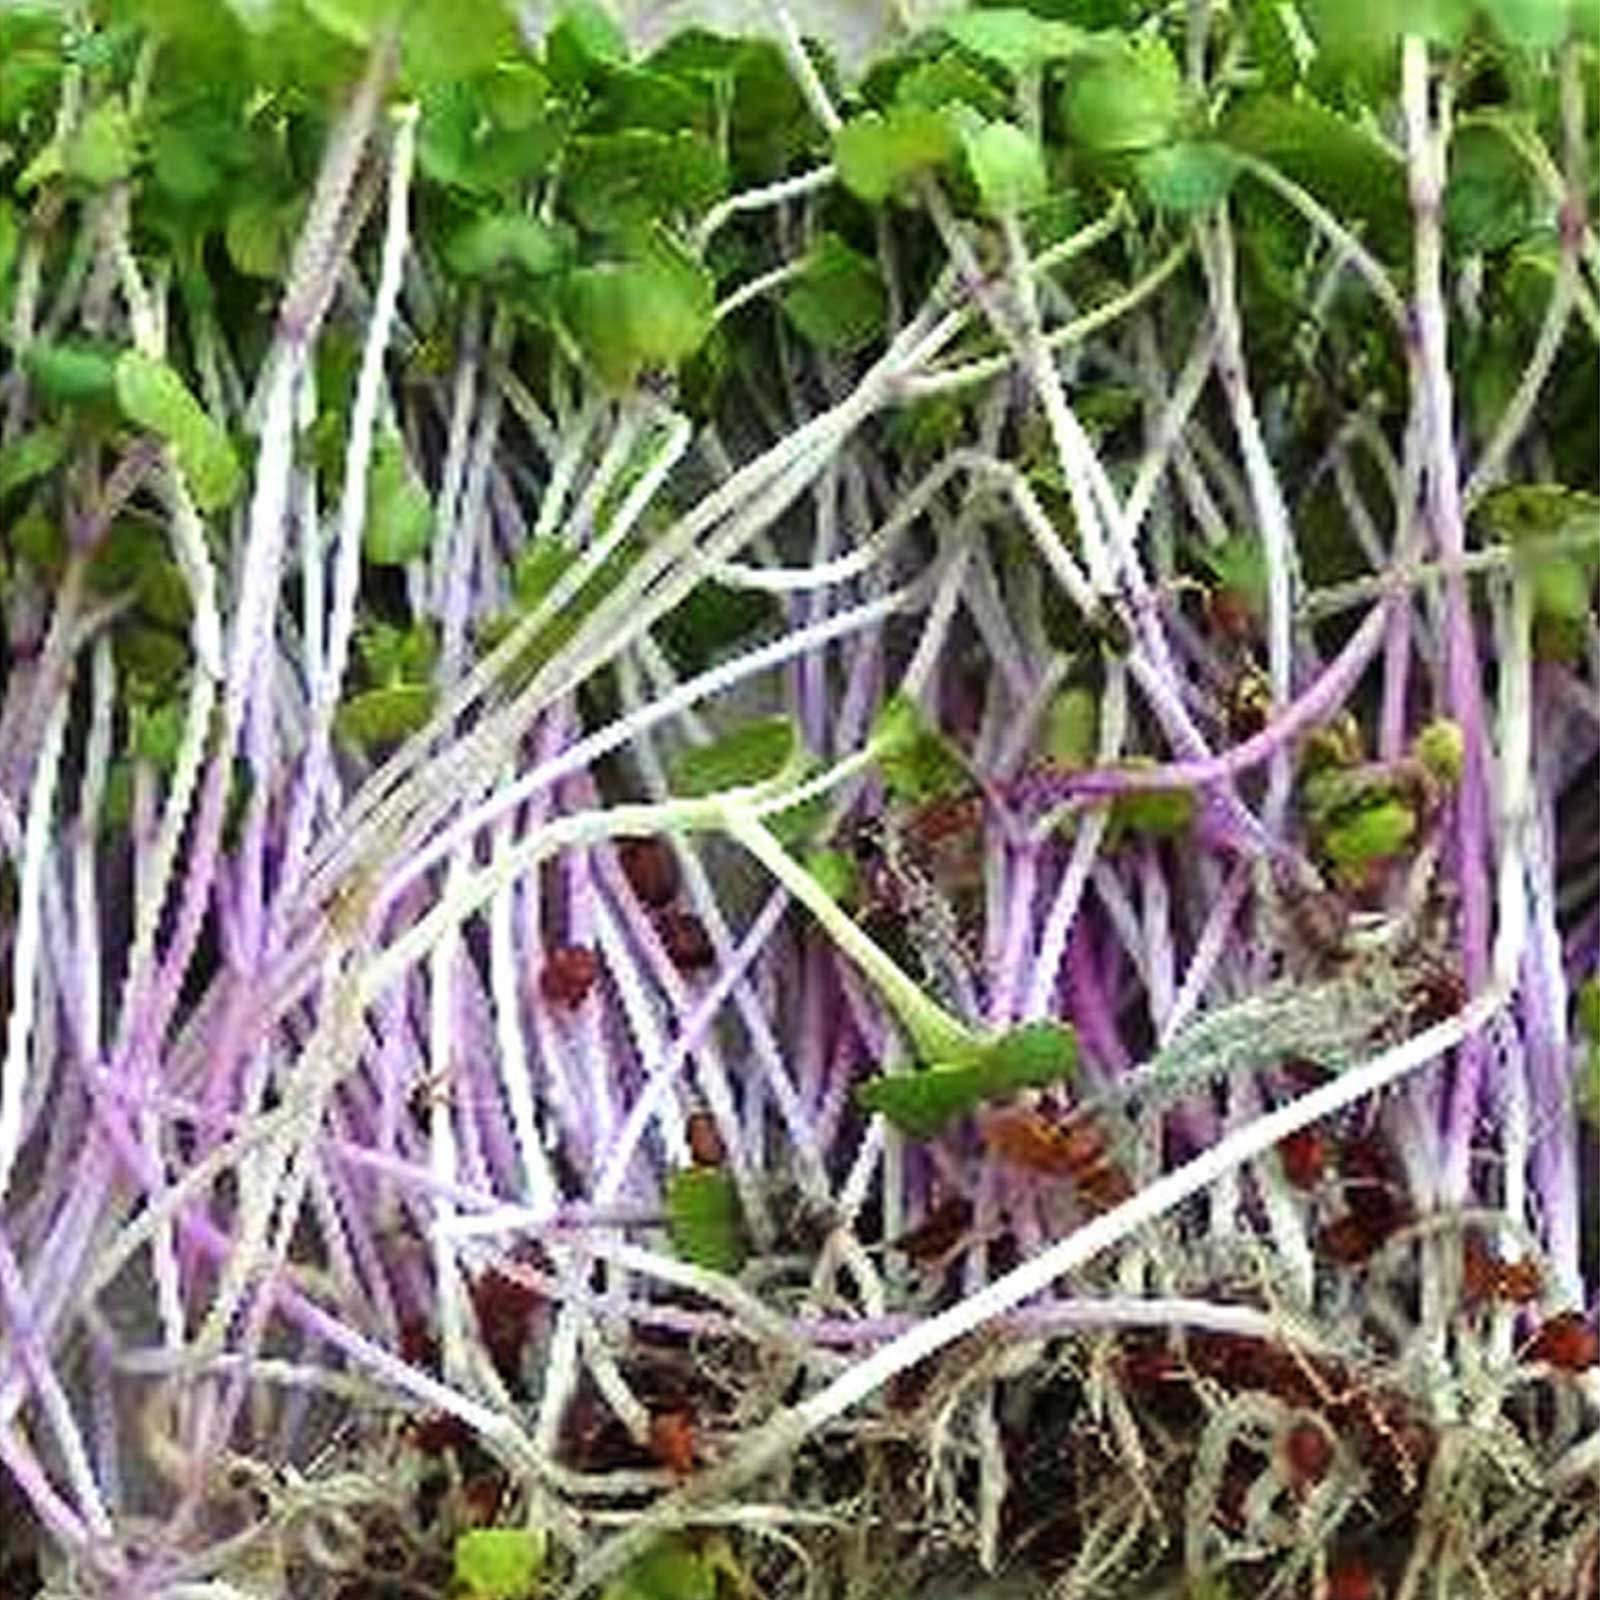 Triton Purple Radish Sprouting Seeds - 5 Lb Bulk Seed - Non-GMO Purple, Red, Green Sprouts- Sprout and Microgreen Radishes